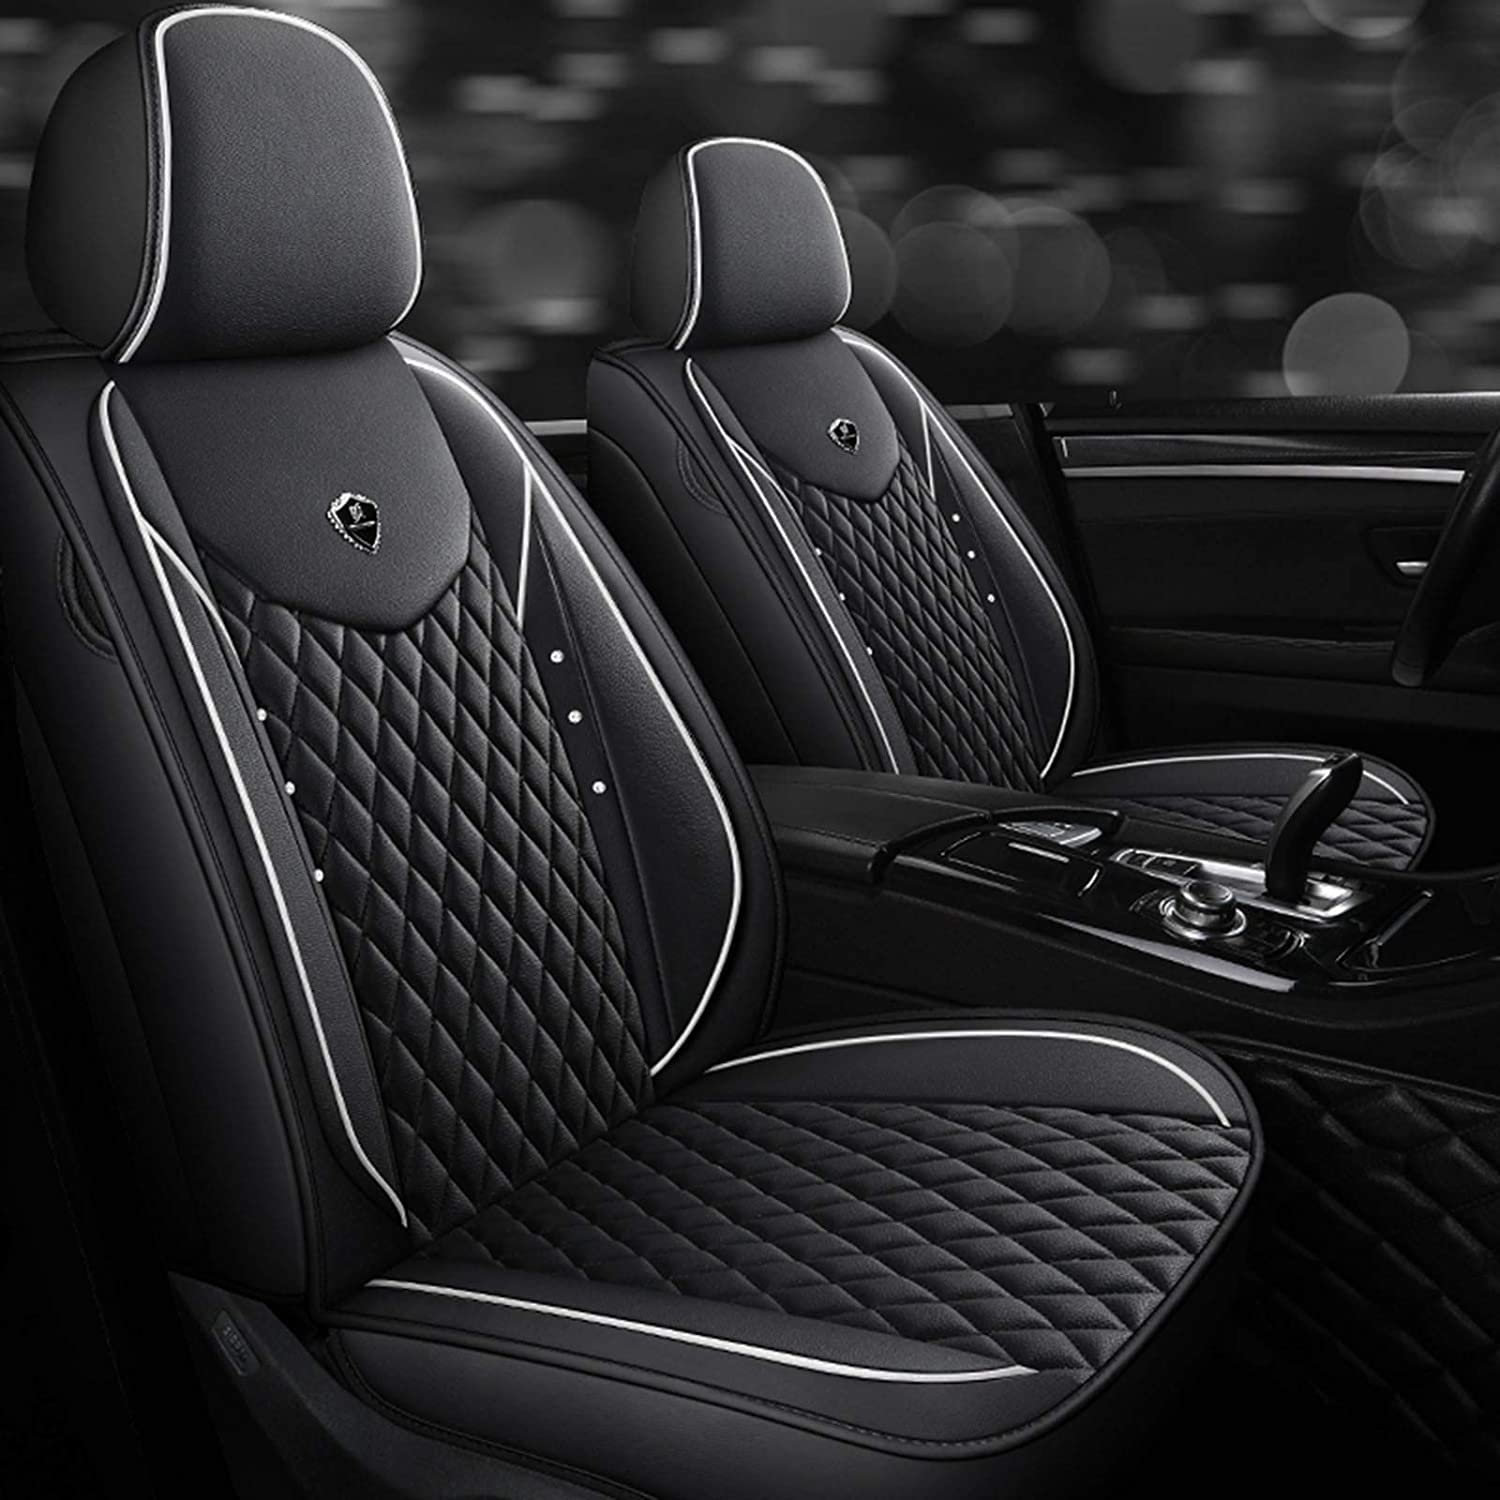 Max 77% OFF HZWZ Cars Seat Covers PU Leather Front Rear Very popular Rhinestone Bling Ful